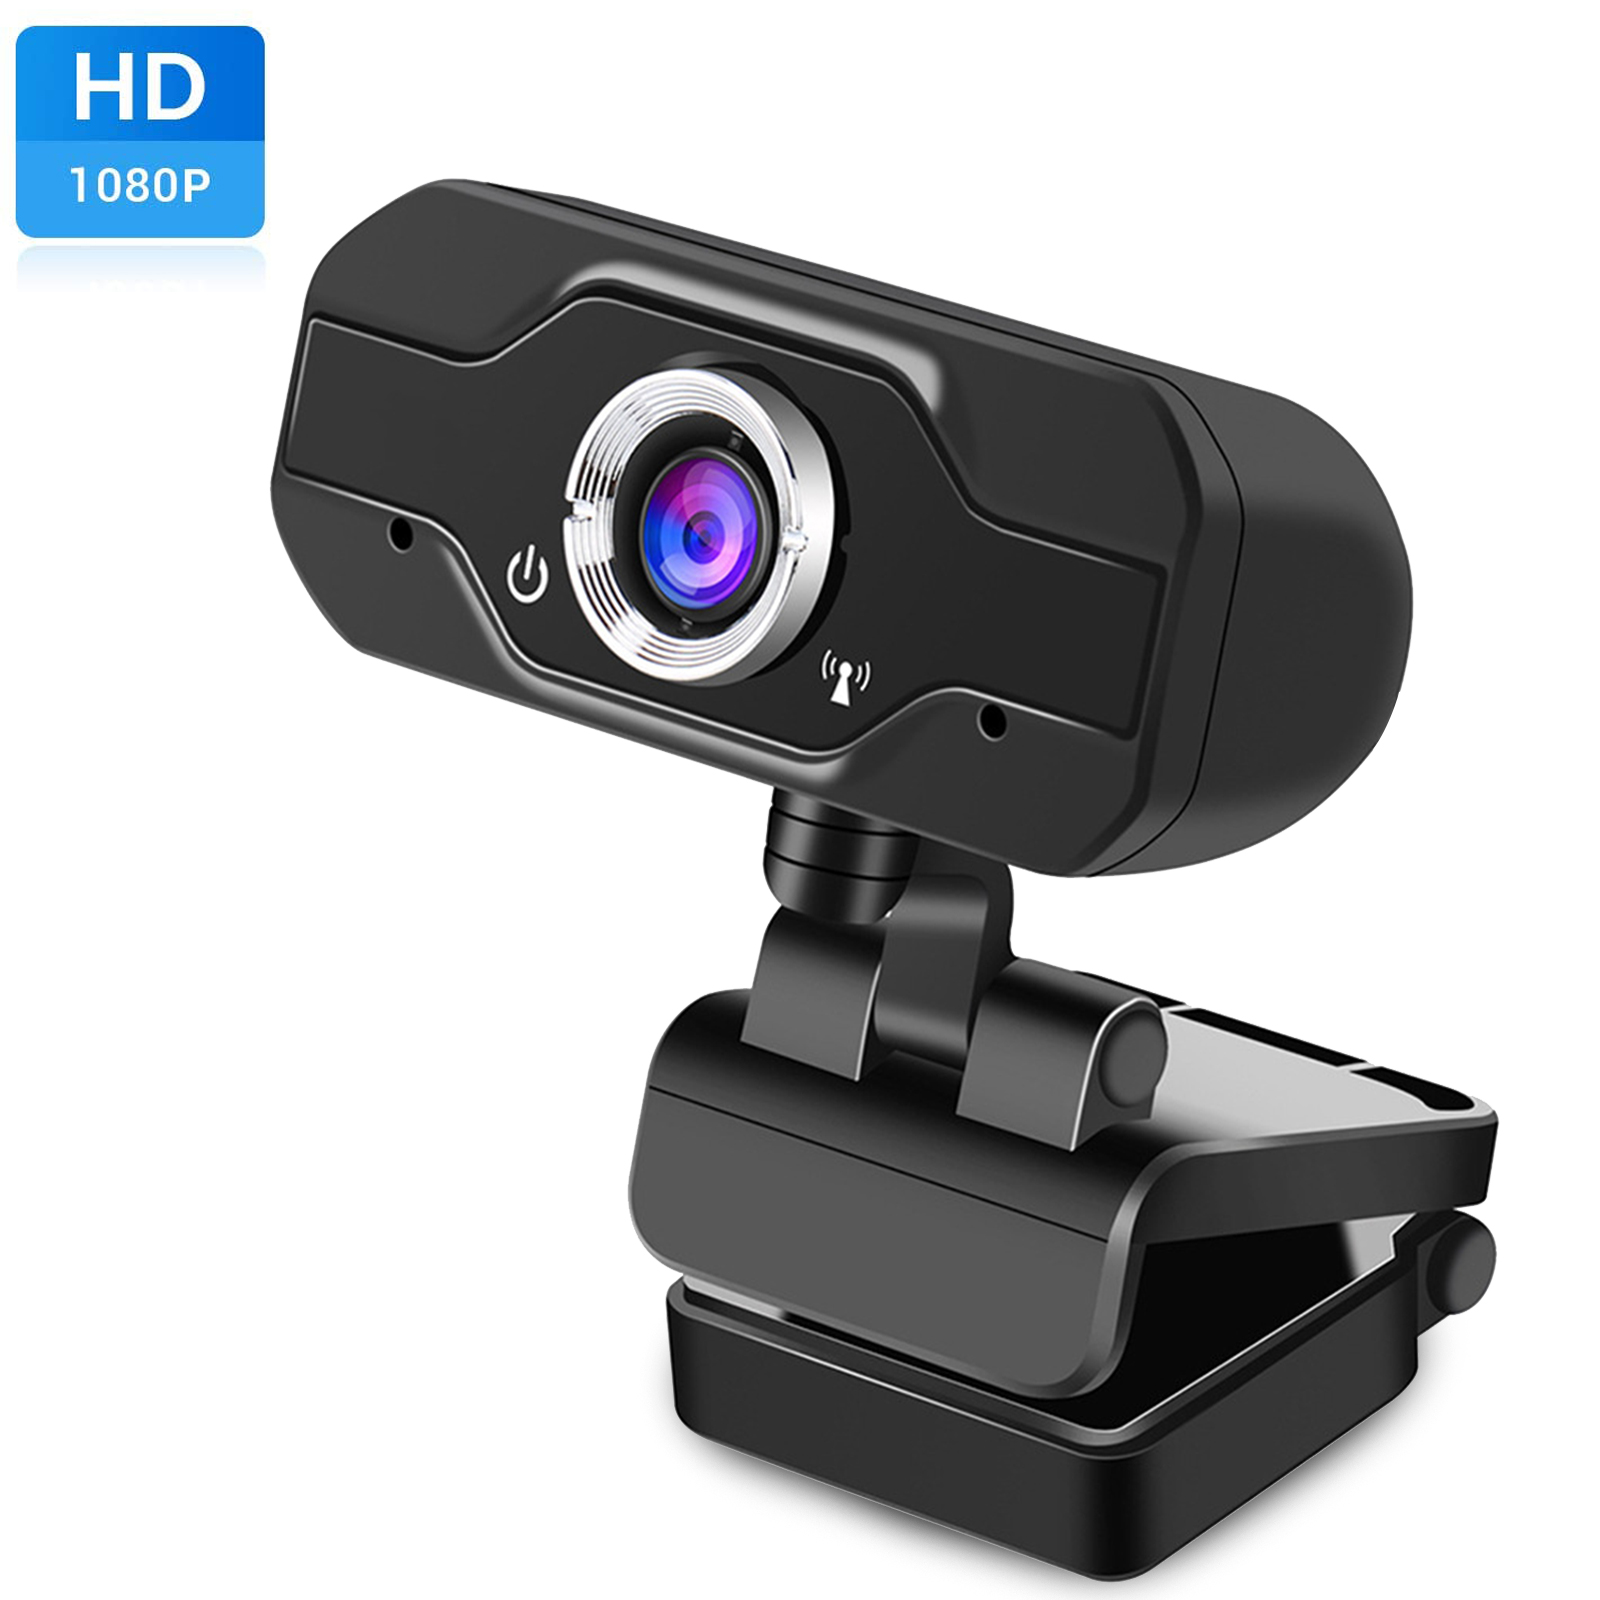 Wide Angle Web Camera with Microphone HD Face Cam for Streaming USB External Camera for Computer Monitor MacBook PC Laptop Desktop Webcam 1080p